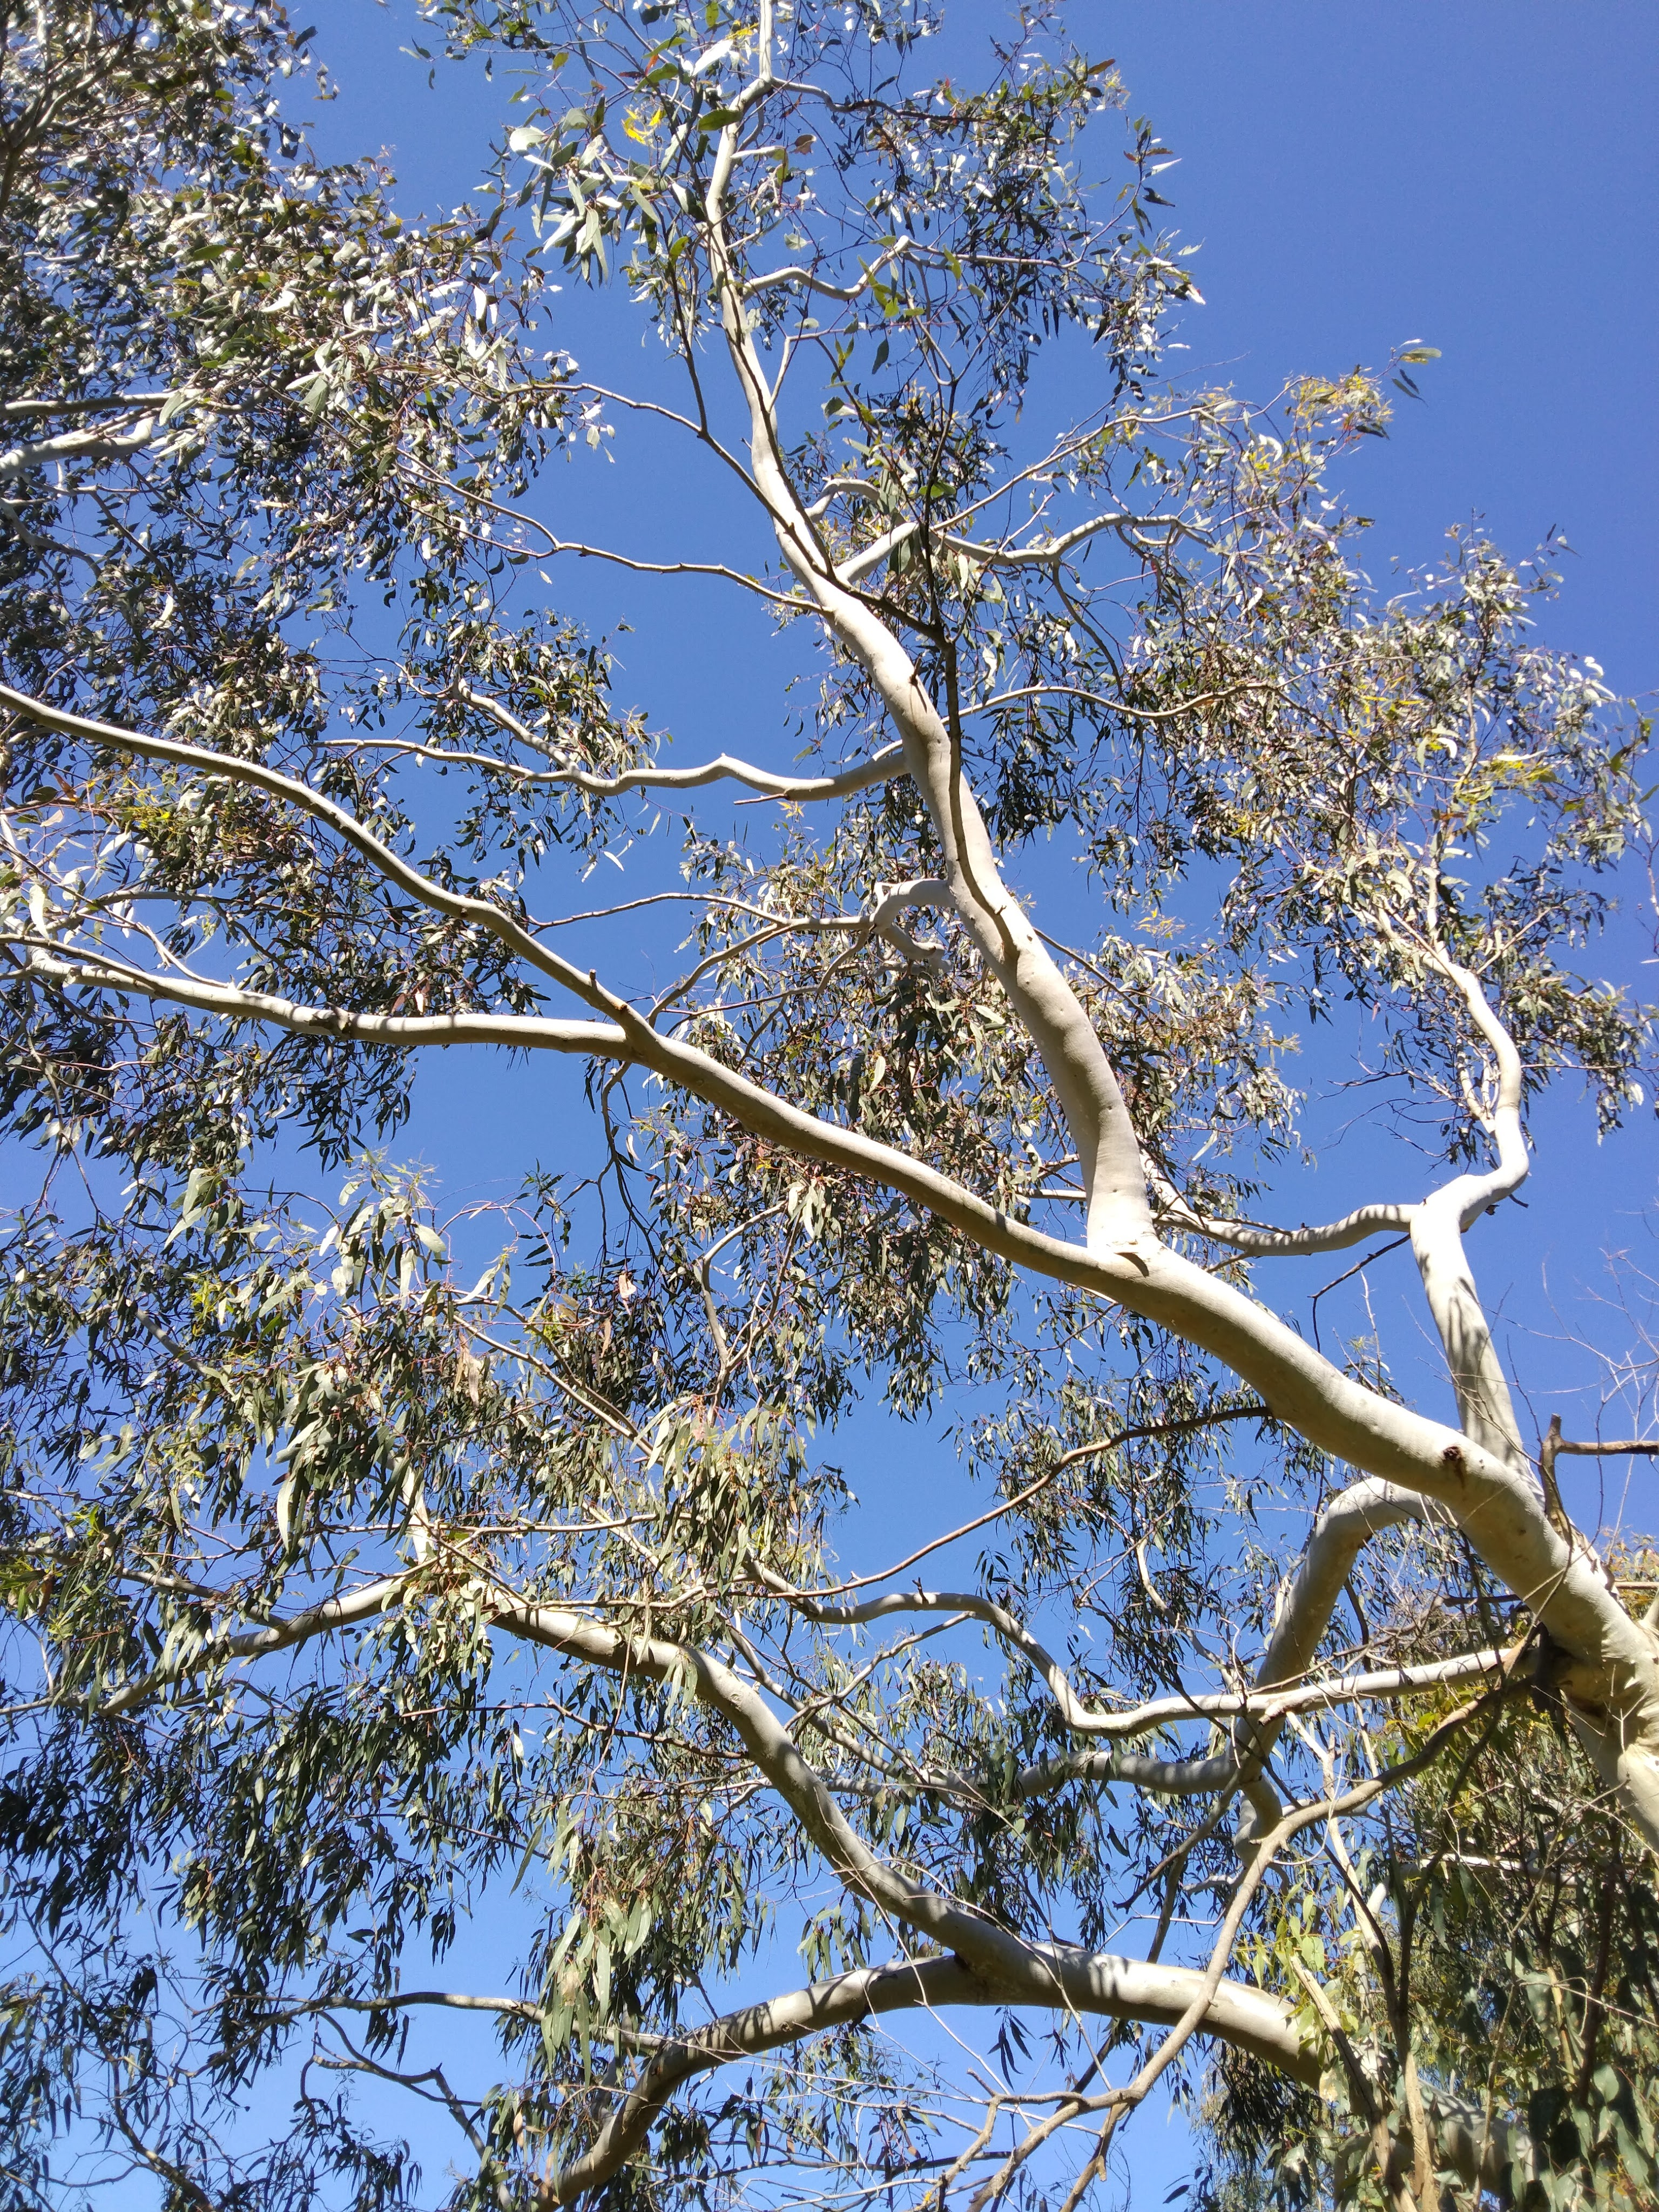 Tree branches against bright sky